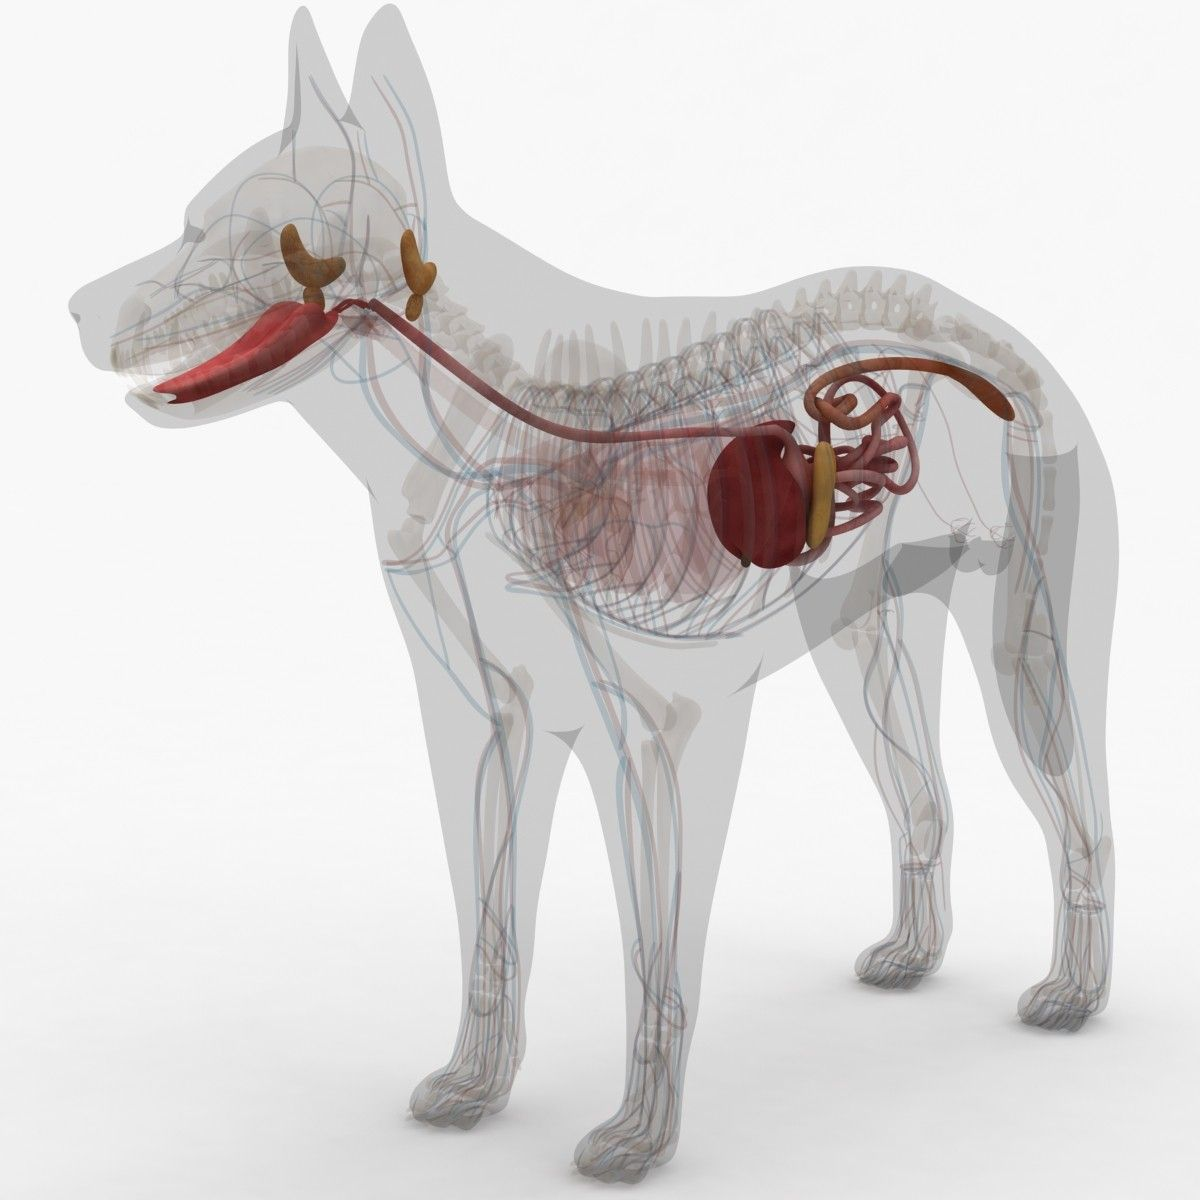 3d Model Dugm01 Dog Anatomy Male Female Veterinary Pinterest